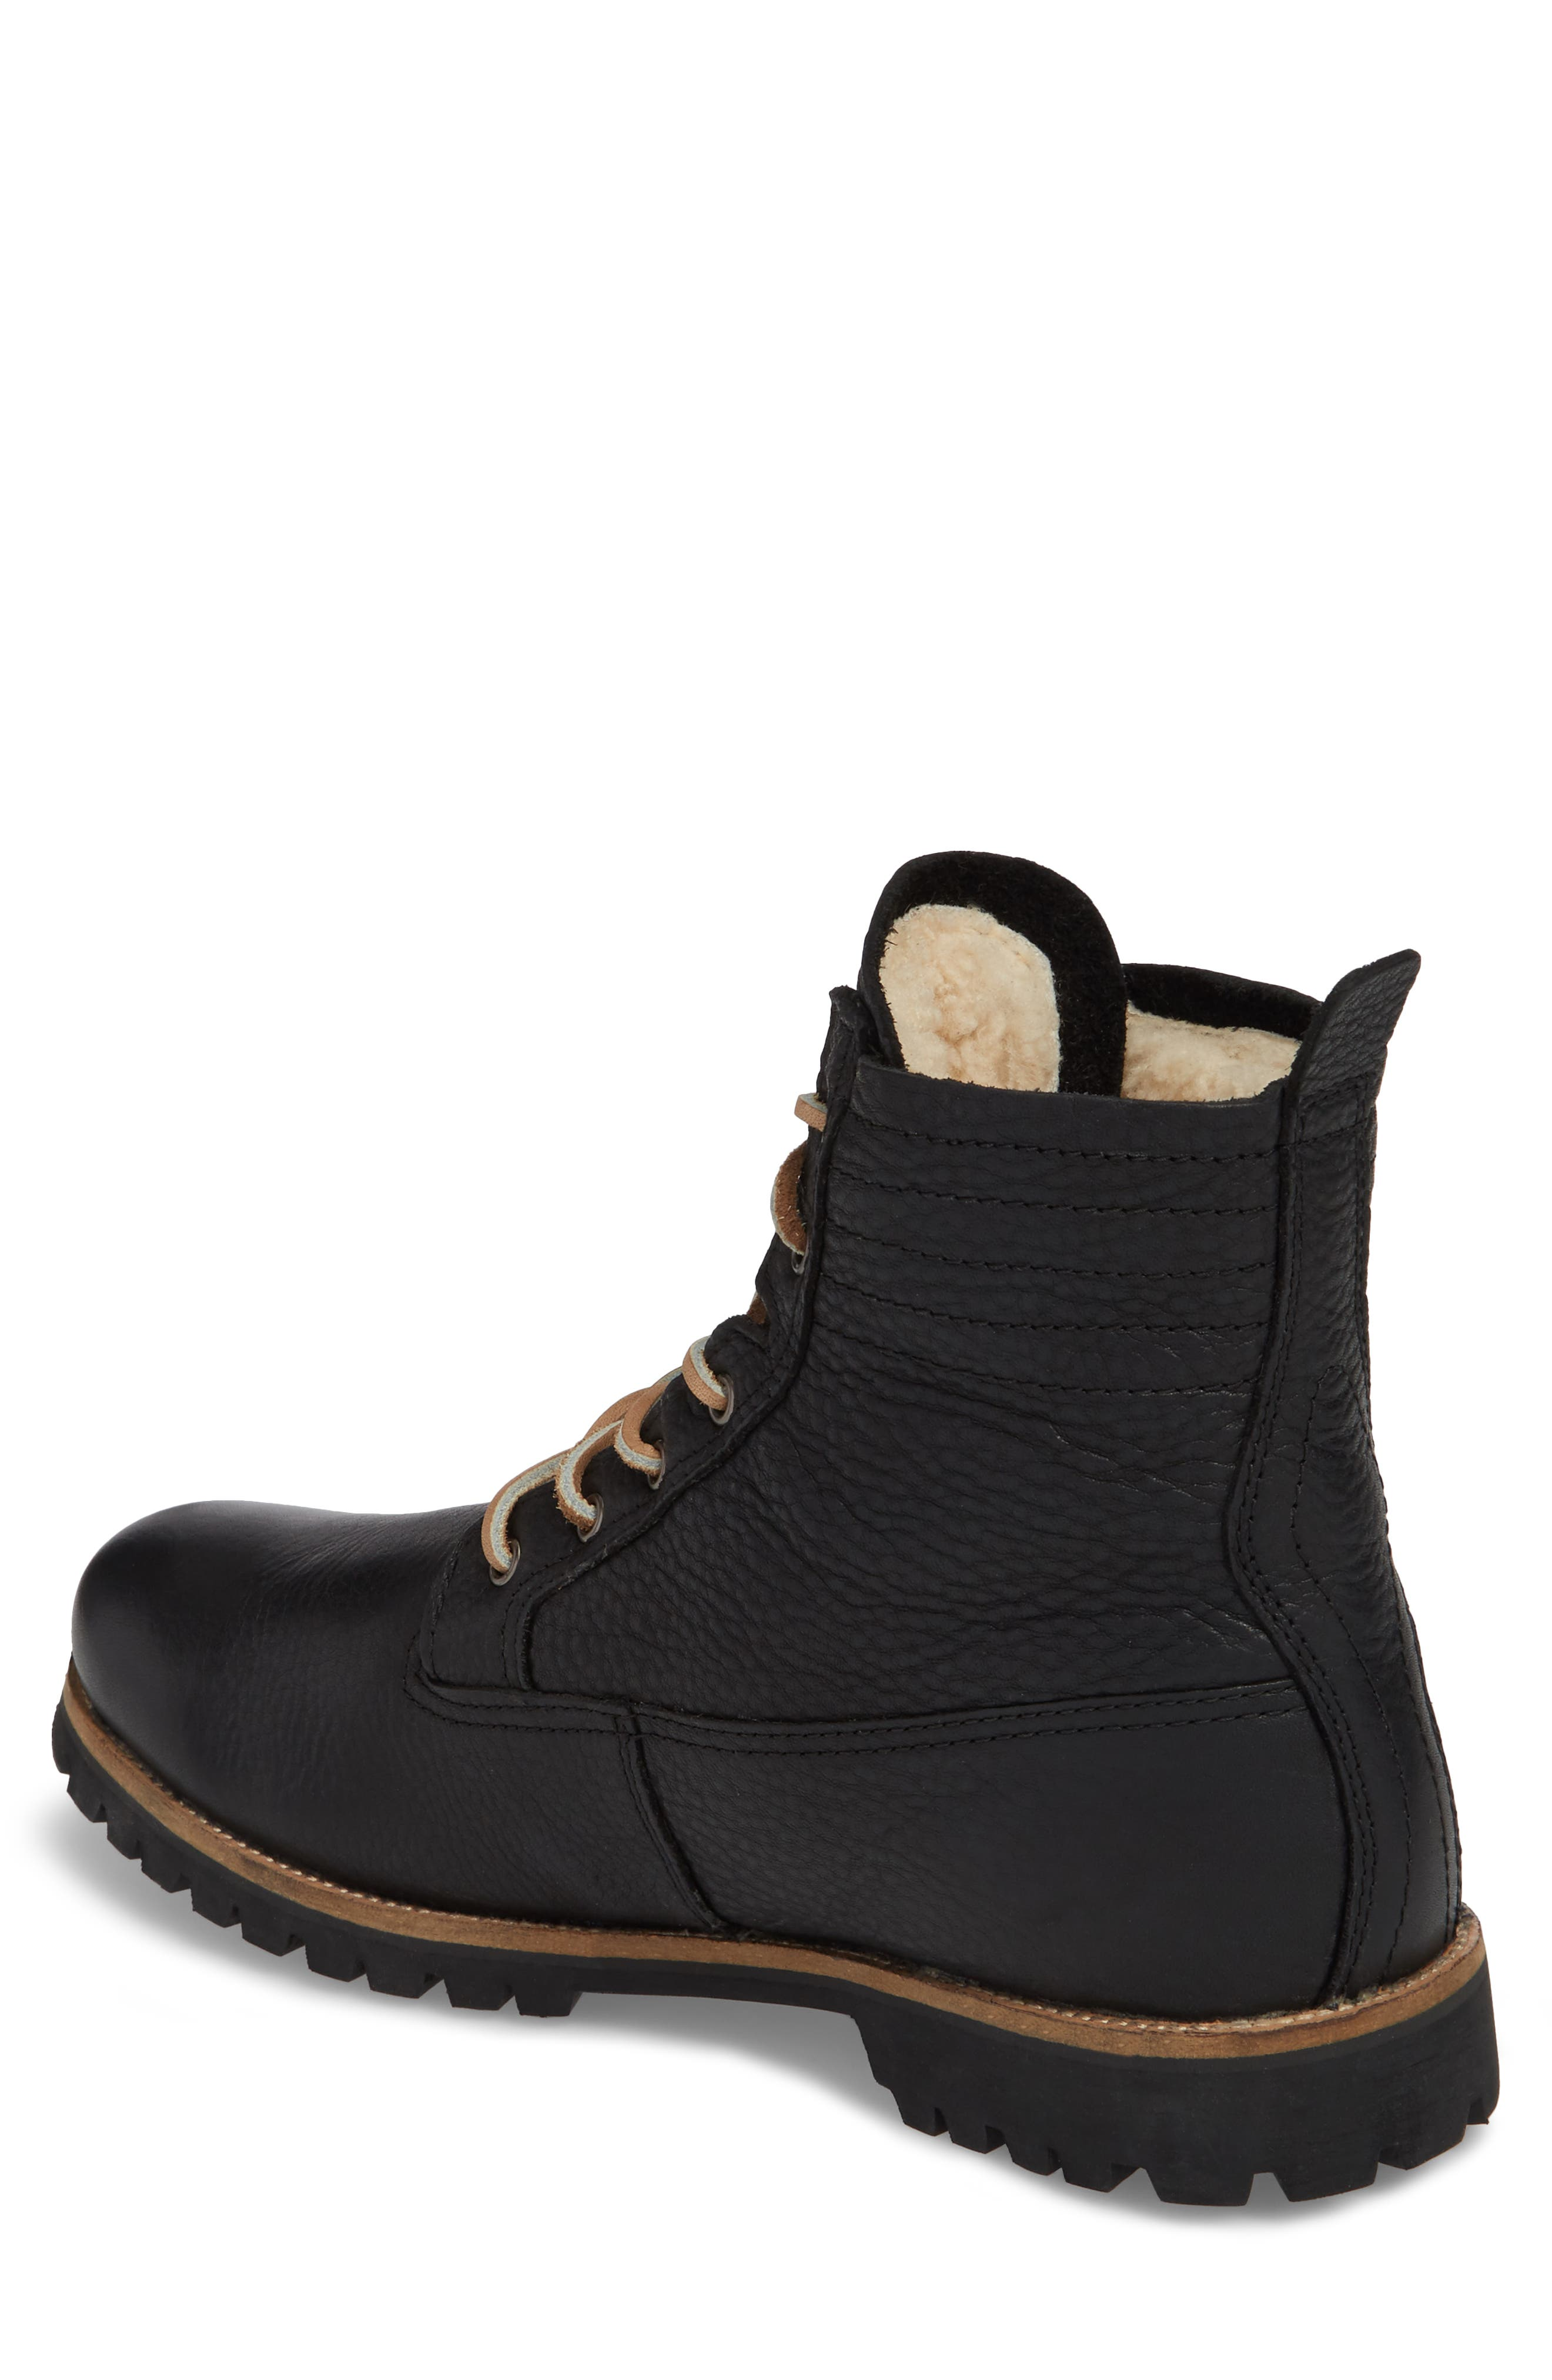 IM 12 Plain Toe Boot with Genuine Shearling,                             Alternate thumbnail 2, color,                             001